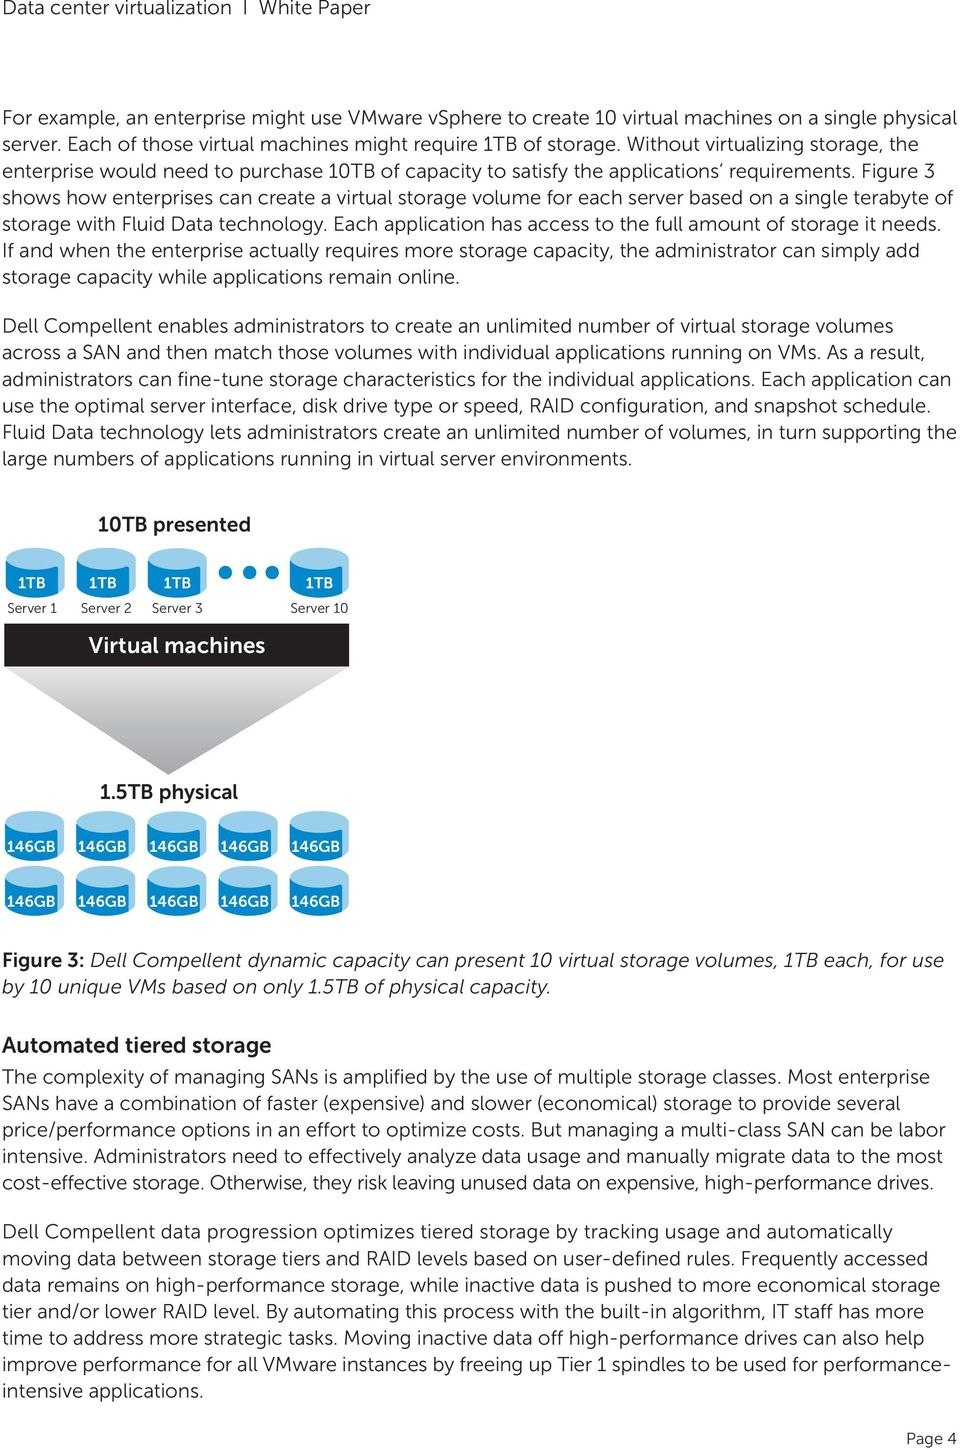 Figure 3 shows how enterprises can create a virtual storage volume for each server based on a single terabyte of storage with Fluid Data technology.